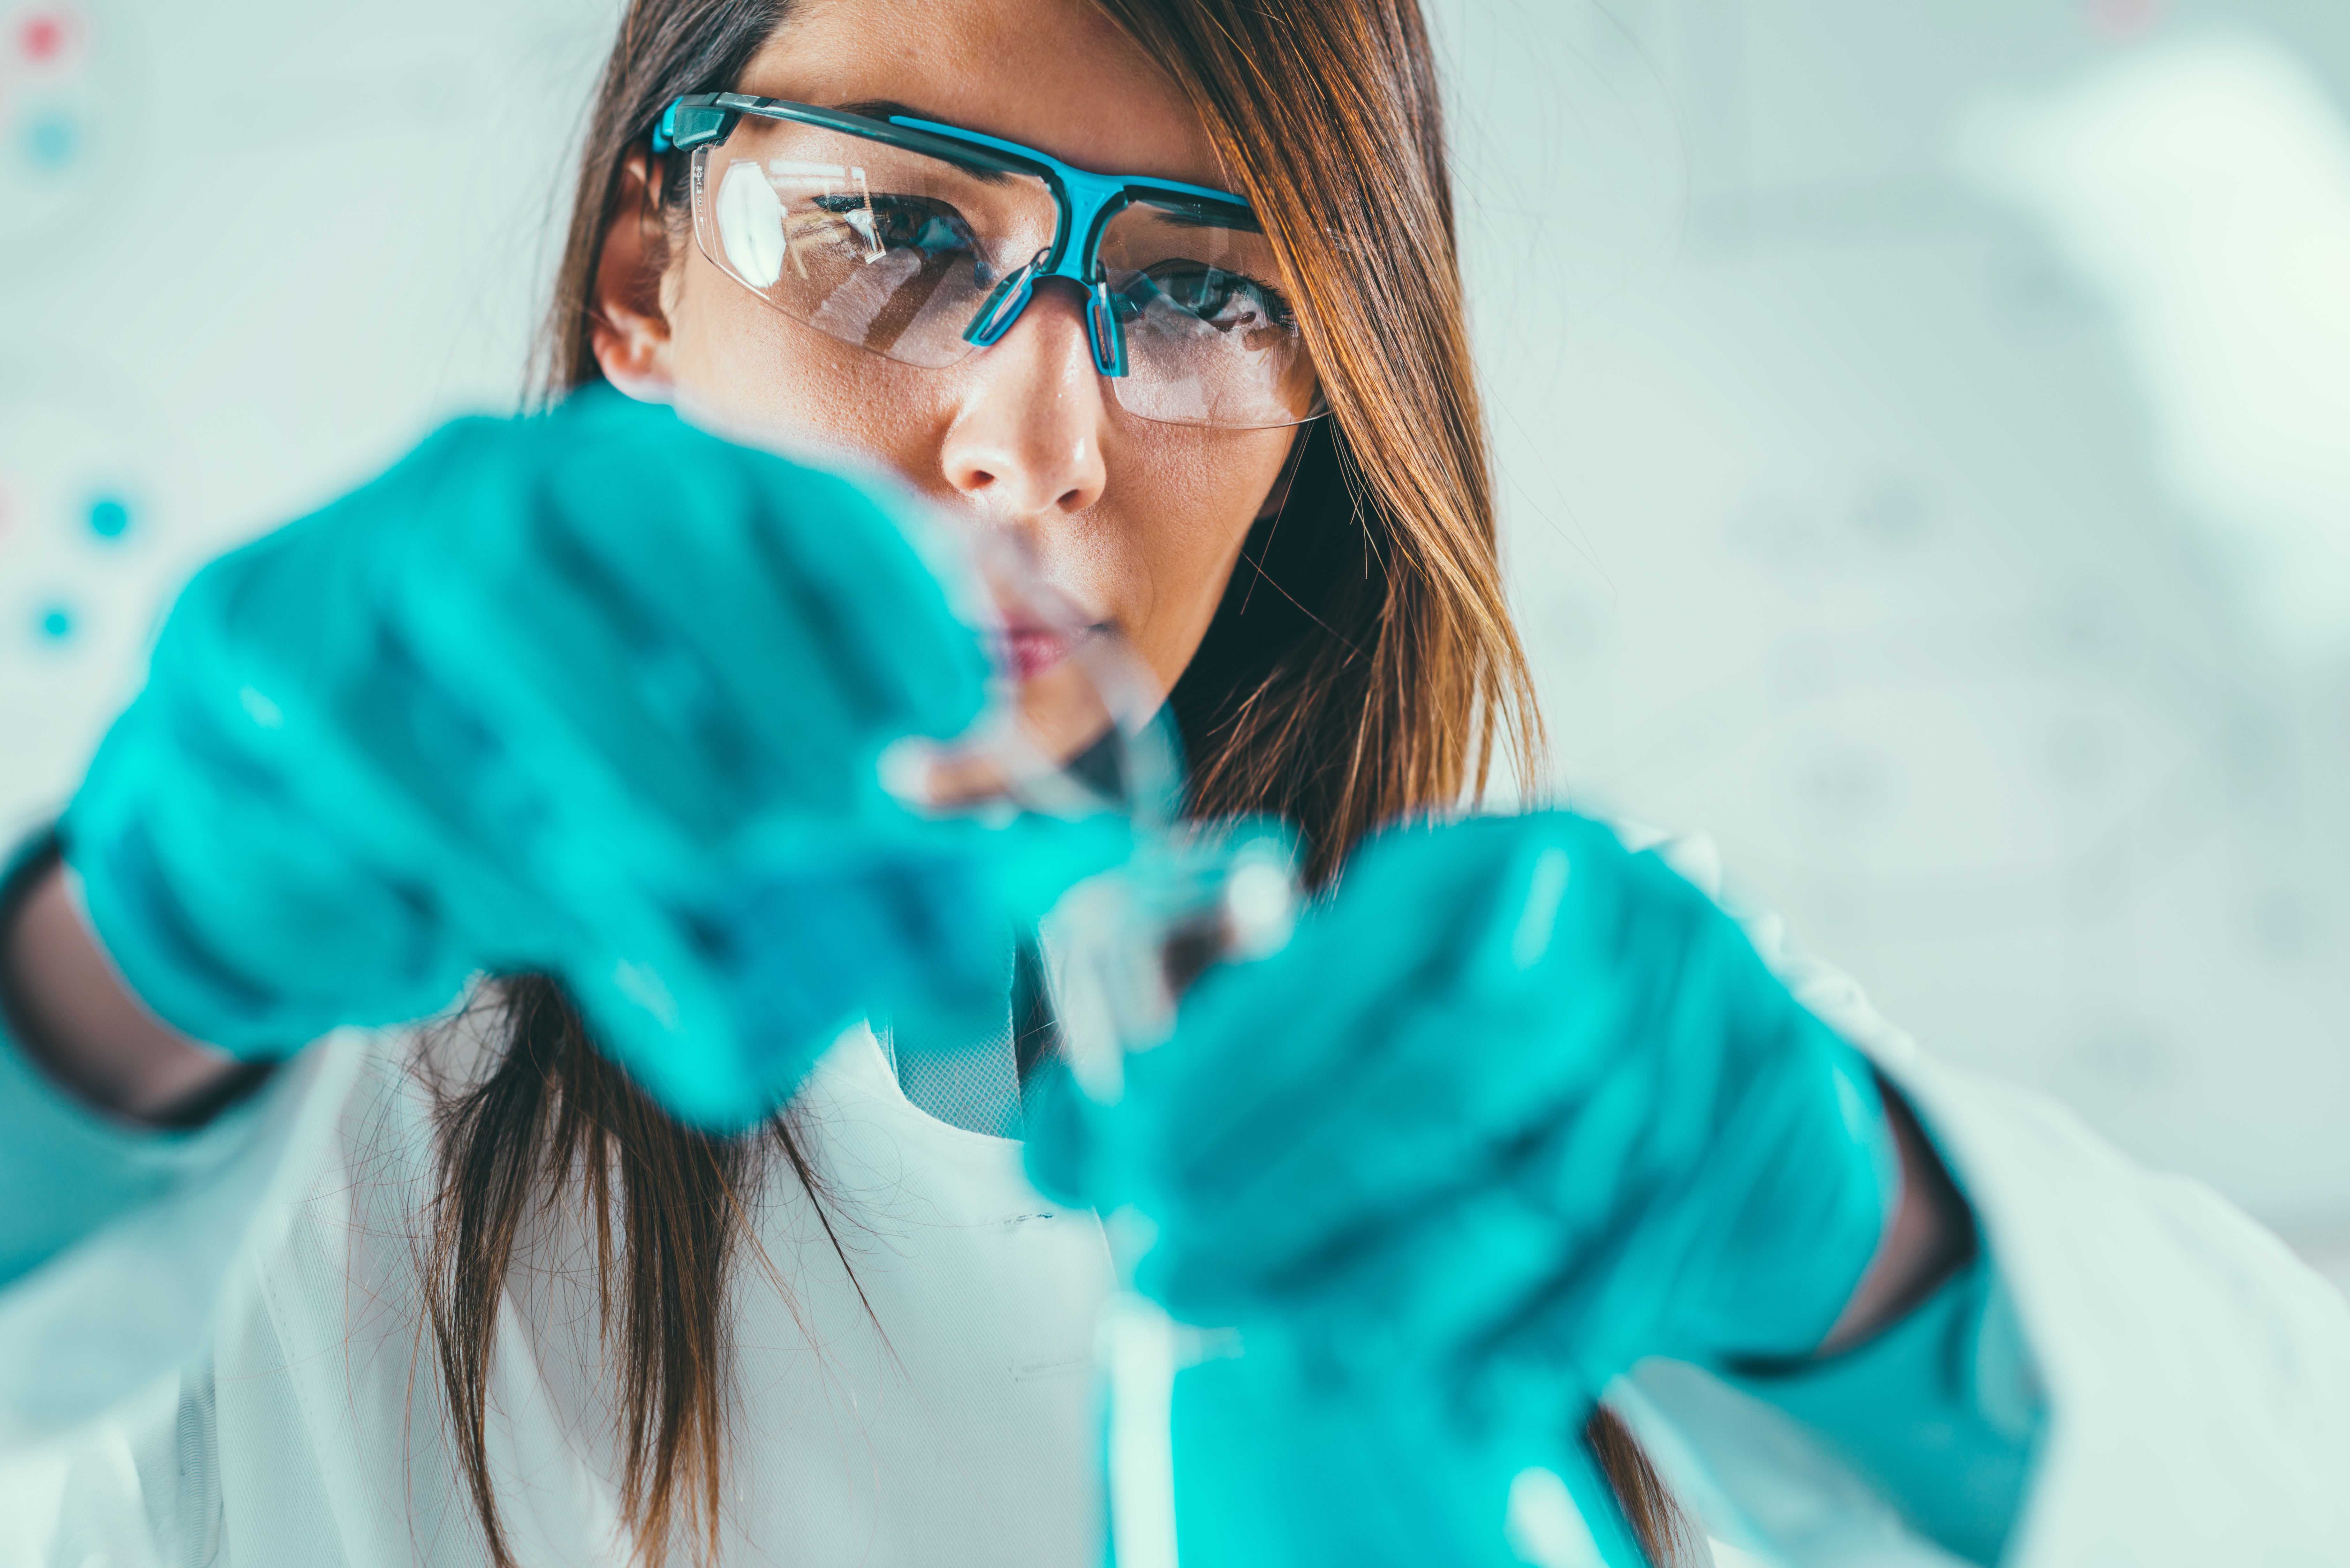 Turnover in the Life Sciences Industry can have a negative financial impact. earn how to increase employee engagements to increase retention and employee morale.